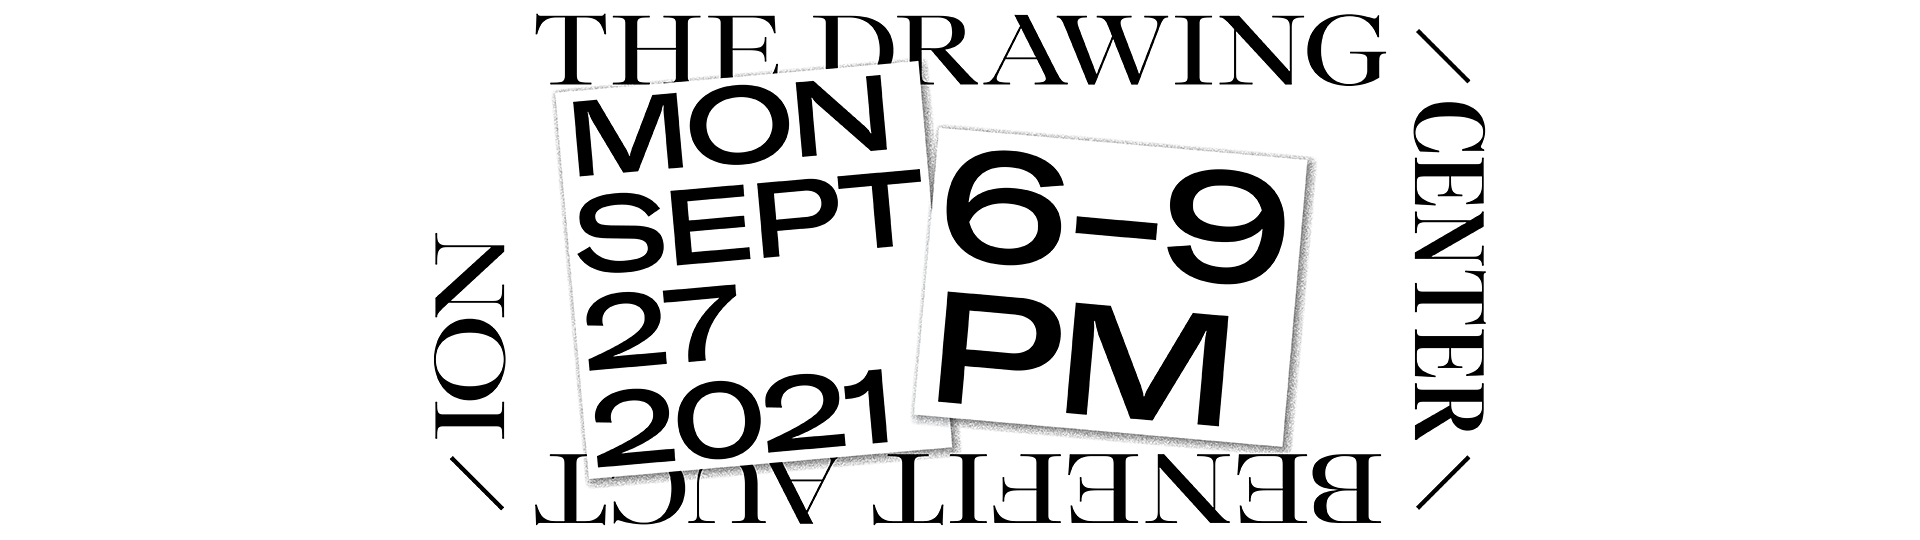 The Drawing Center 2021 Benefit Auction by The Drawing Center